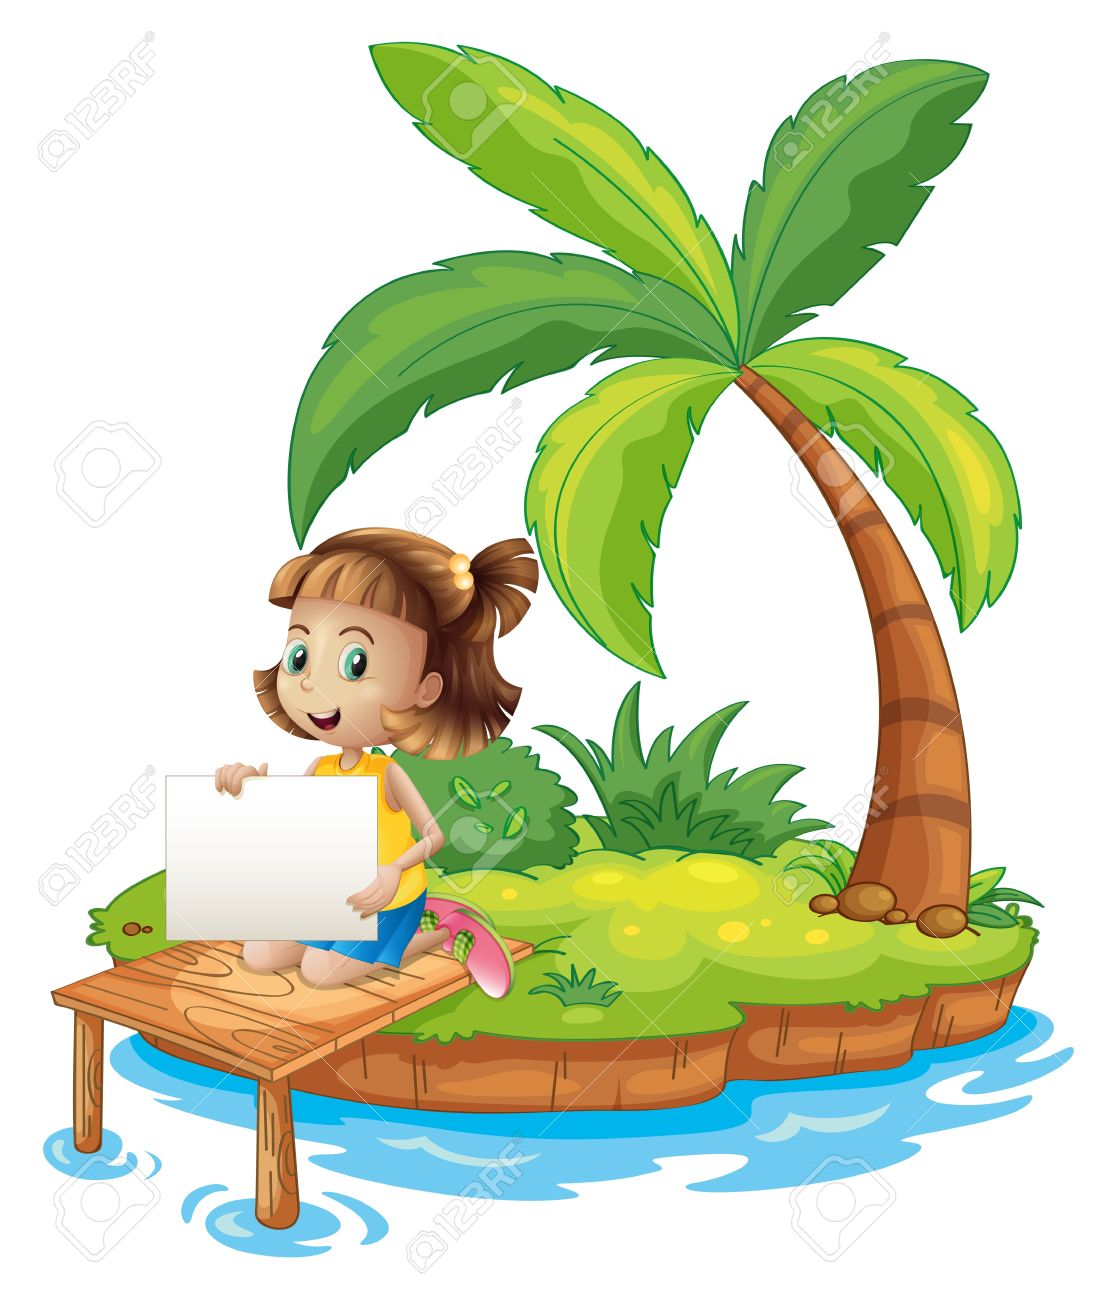 Illustration of a girl at the island with an empty signage on a white background Stock Vector - 21658805